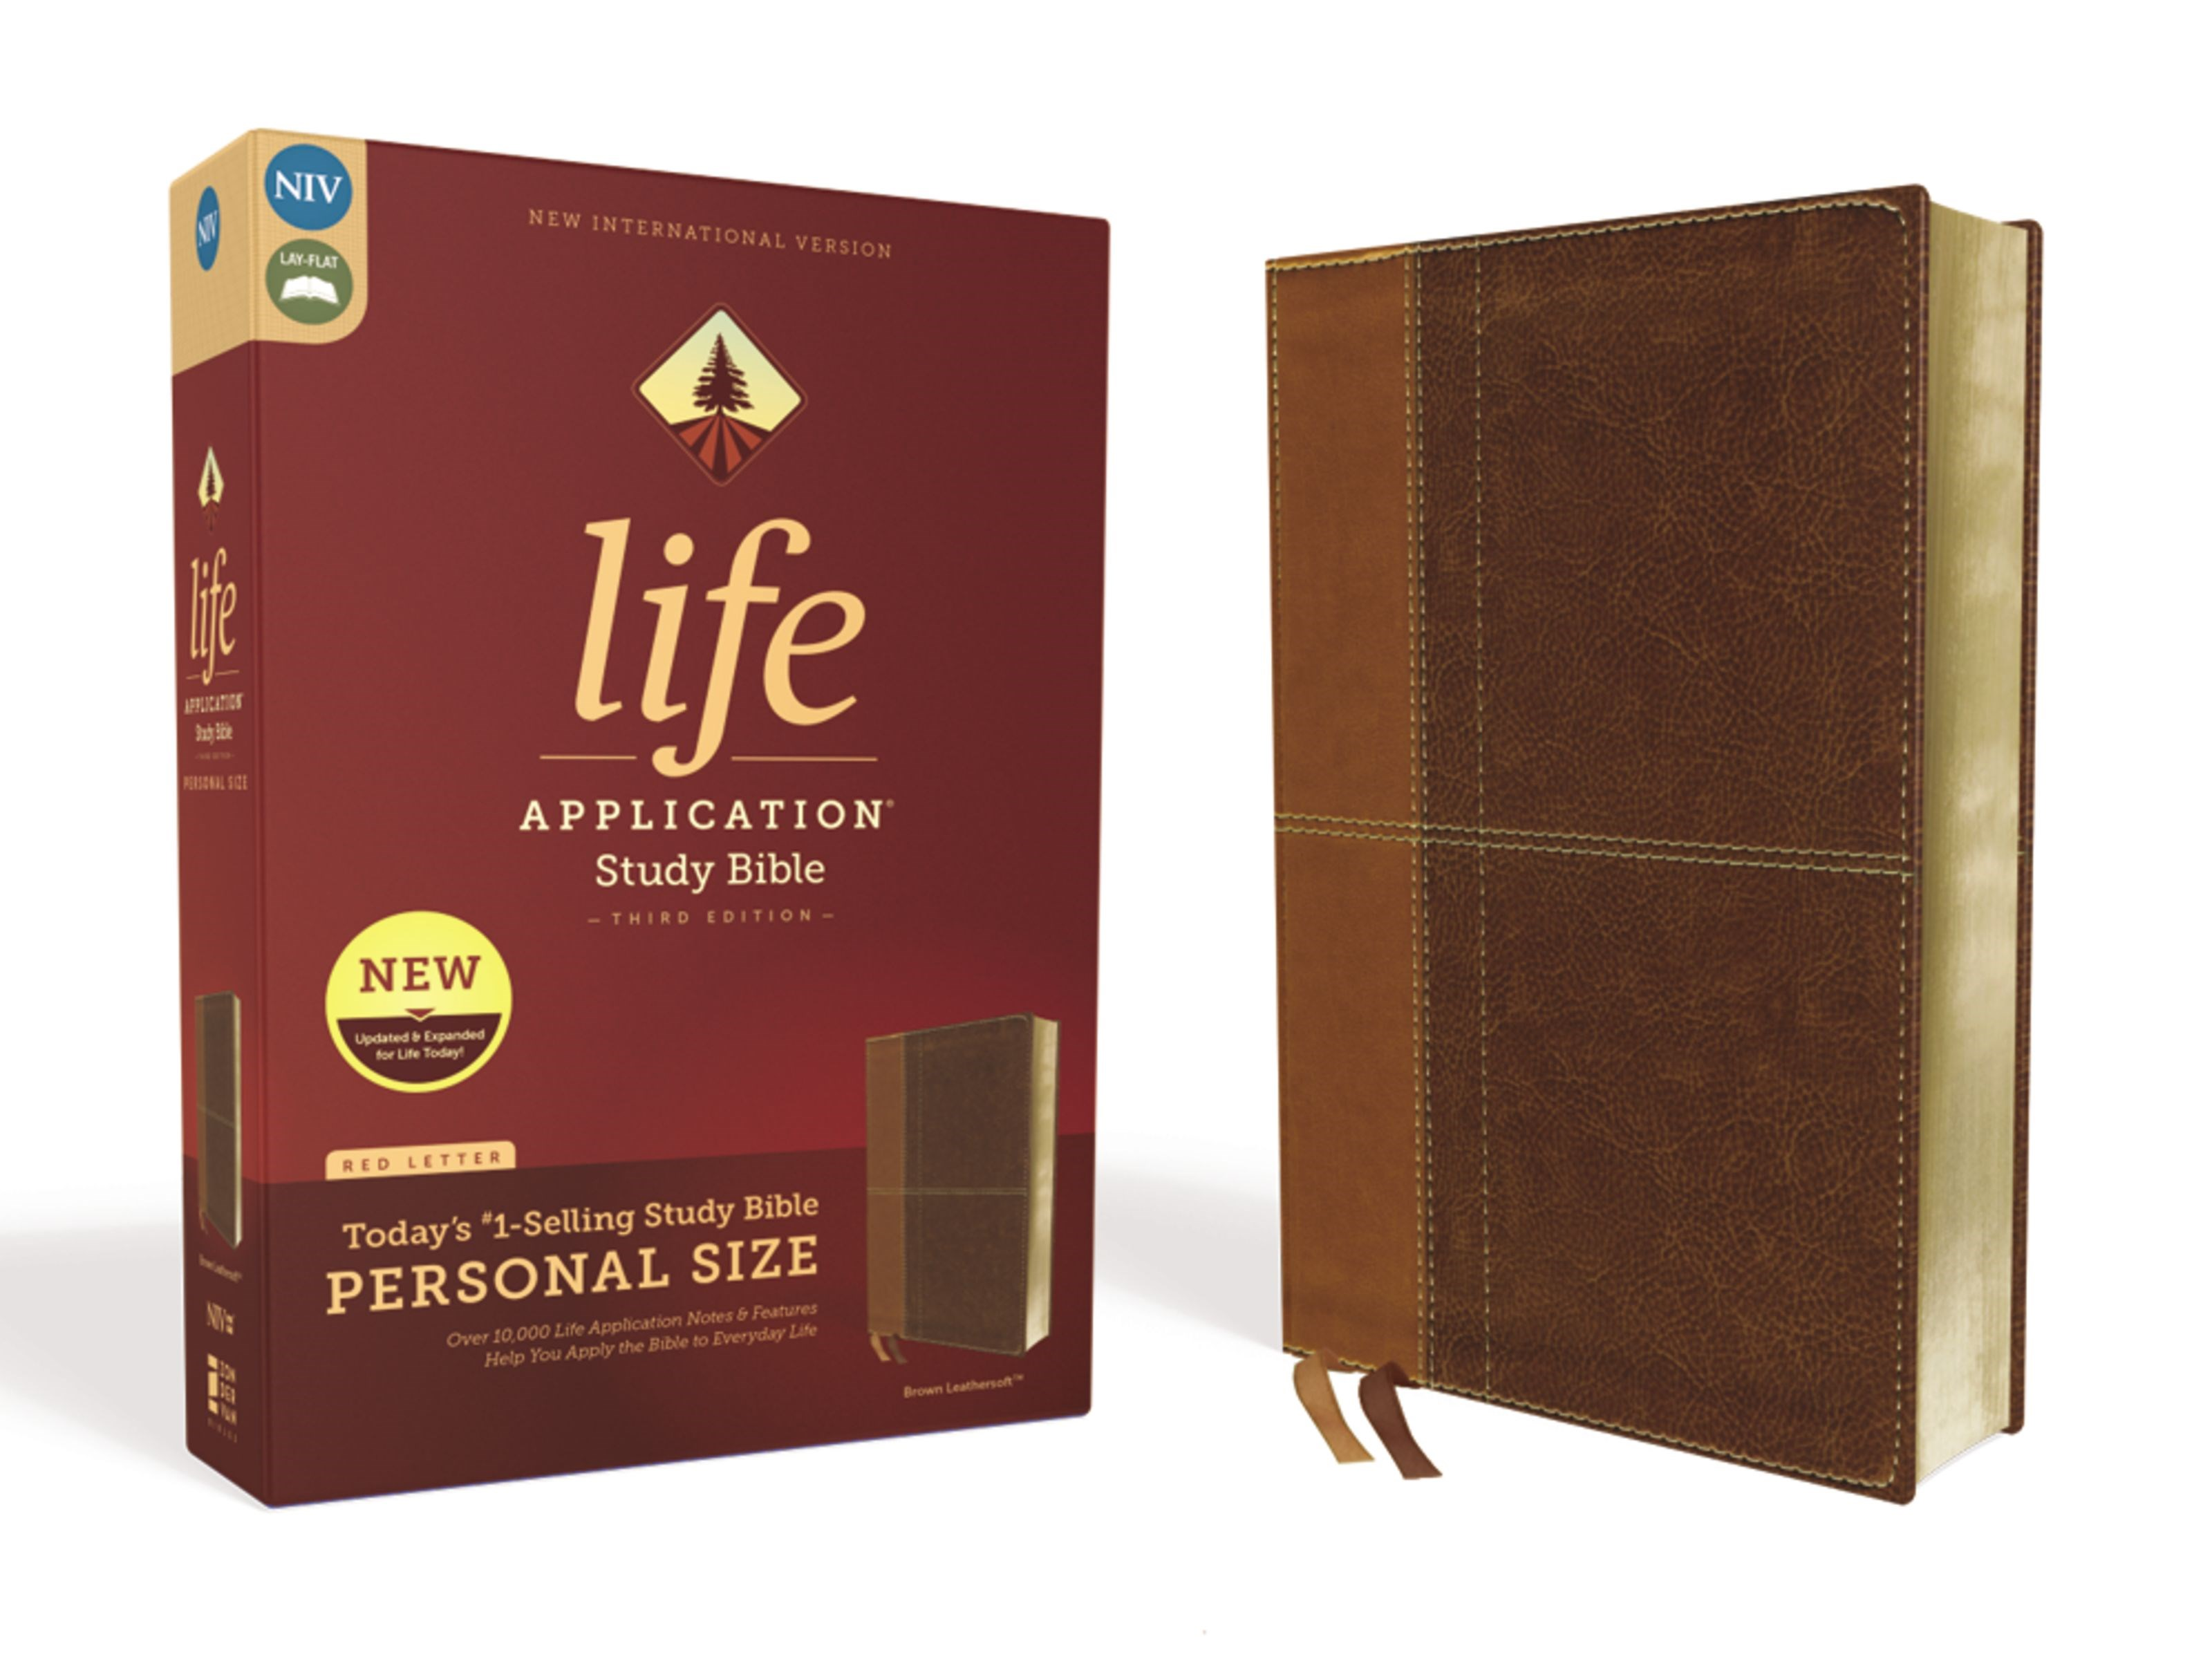 NIV Life Application Study Bible/Personal Size (Third Edition)-Brown Leathersoft